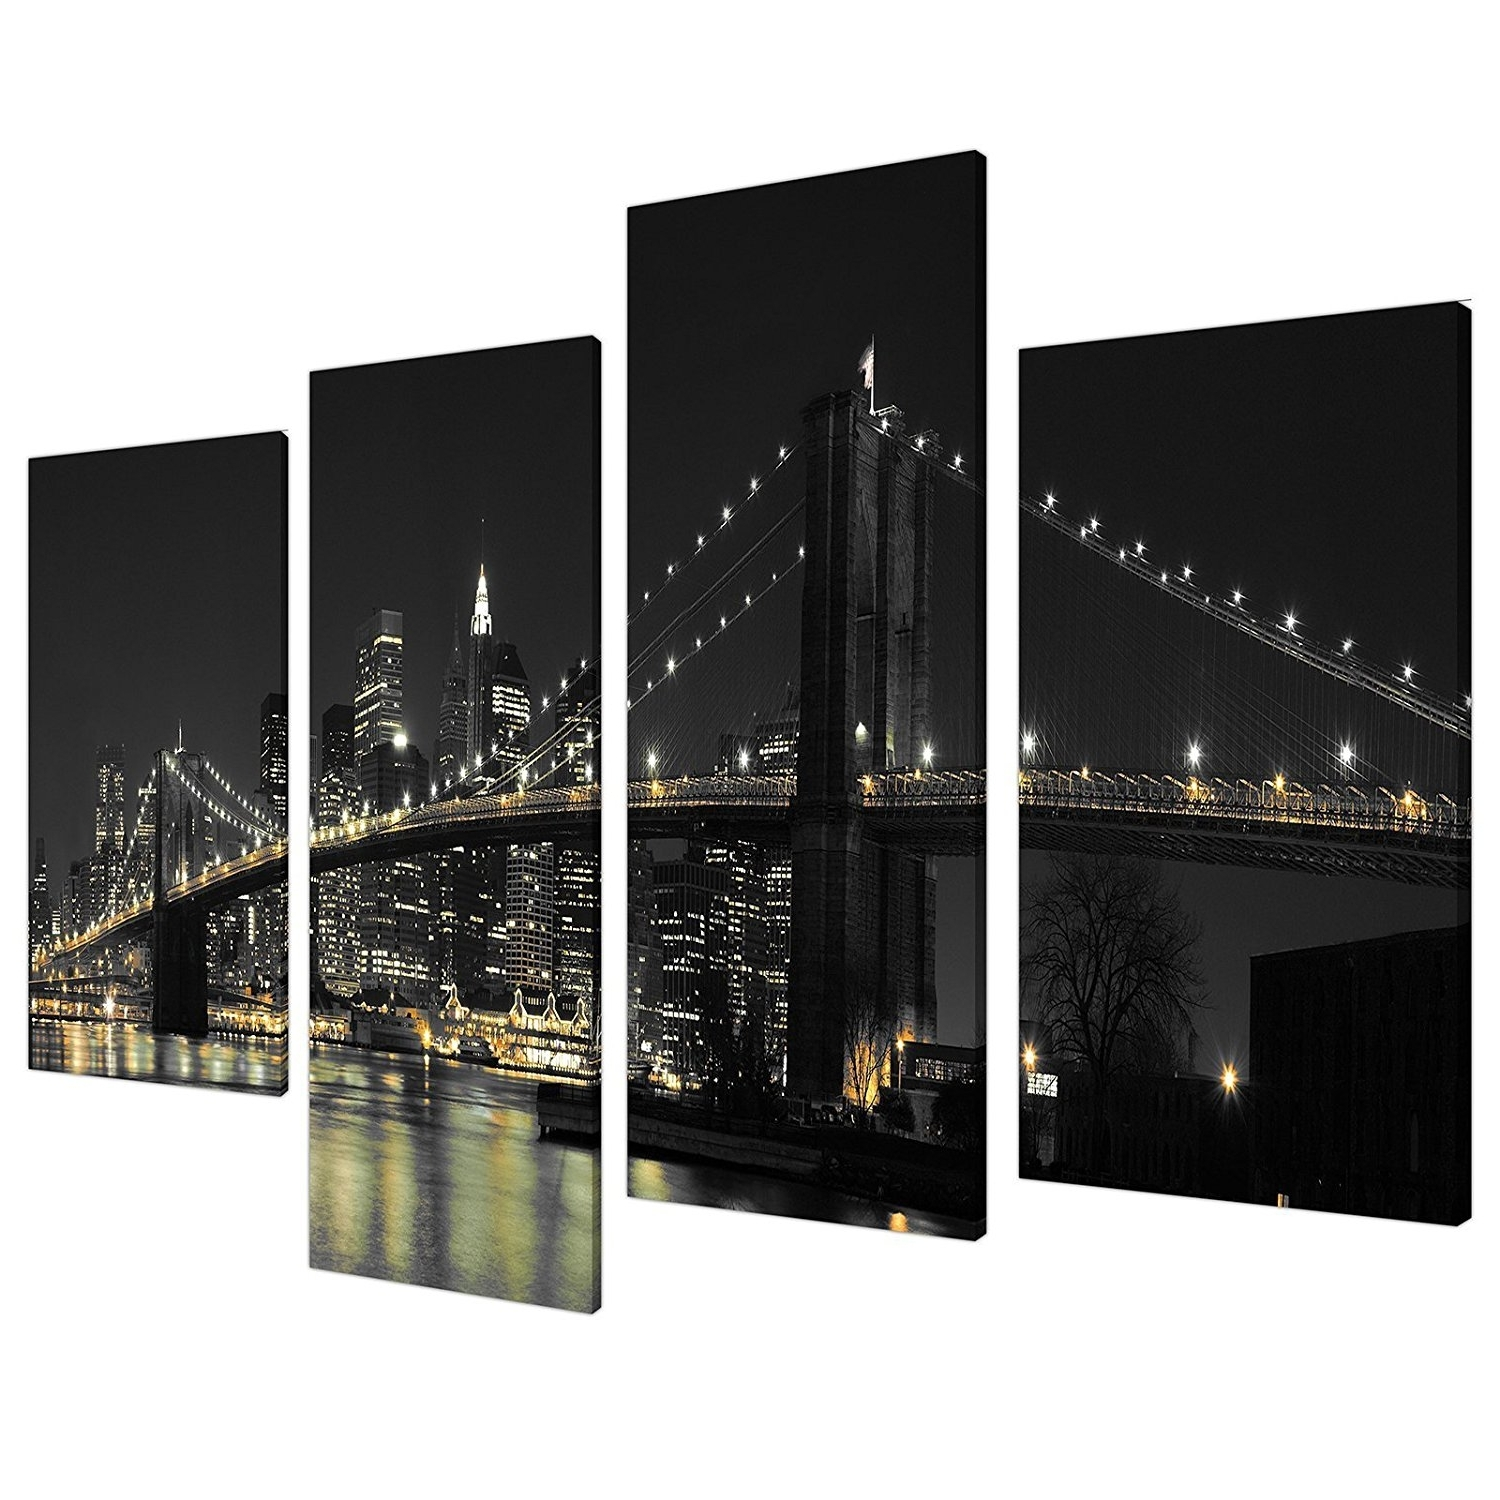 2018 Black And White Canvas Wall Art Intended For Amazon: Large New York City Canvas Wall Art Pictures Of Nyc (View 2 of 15)